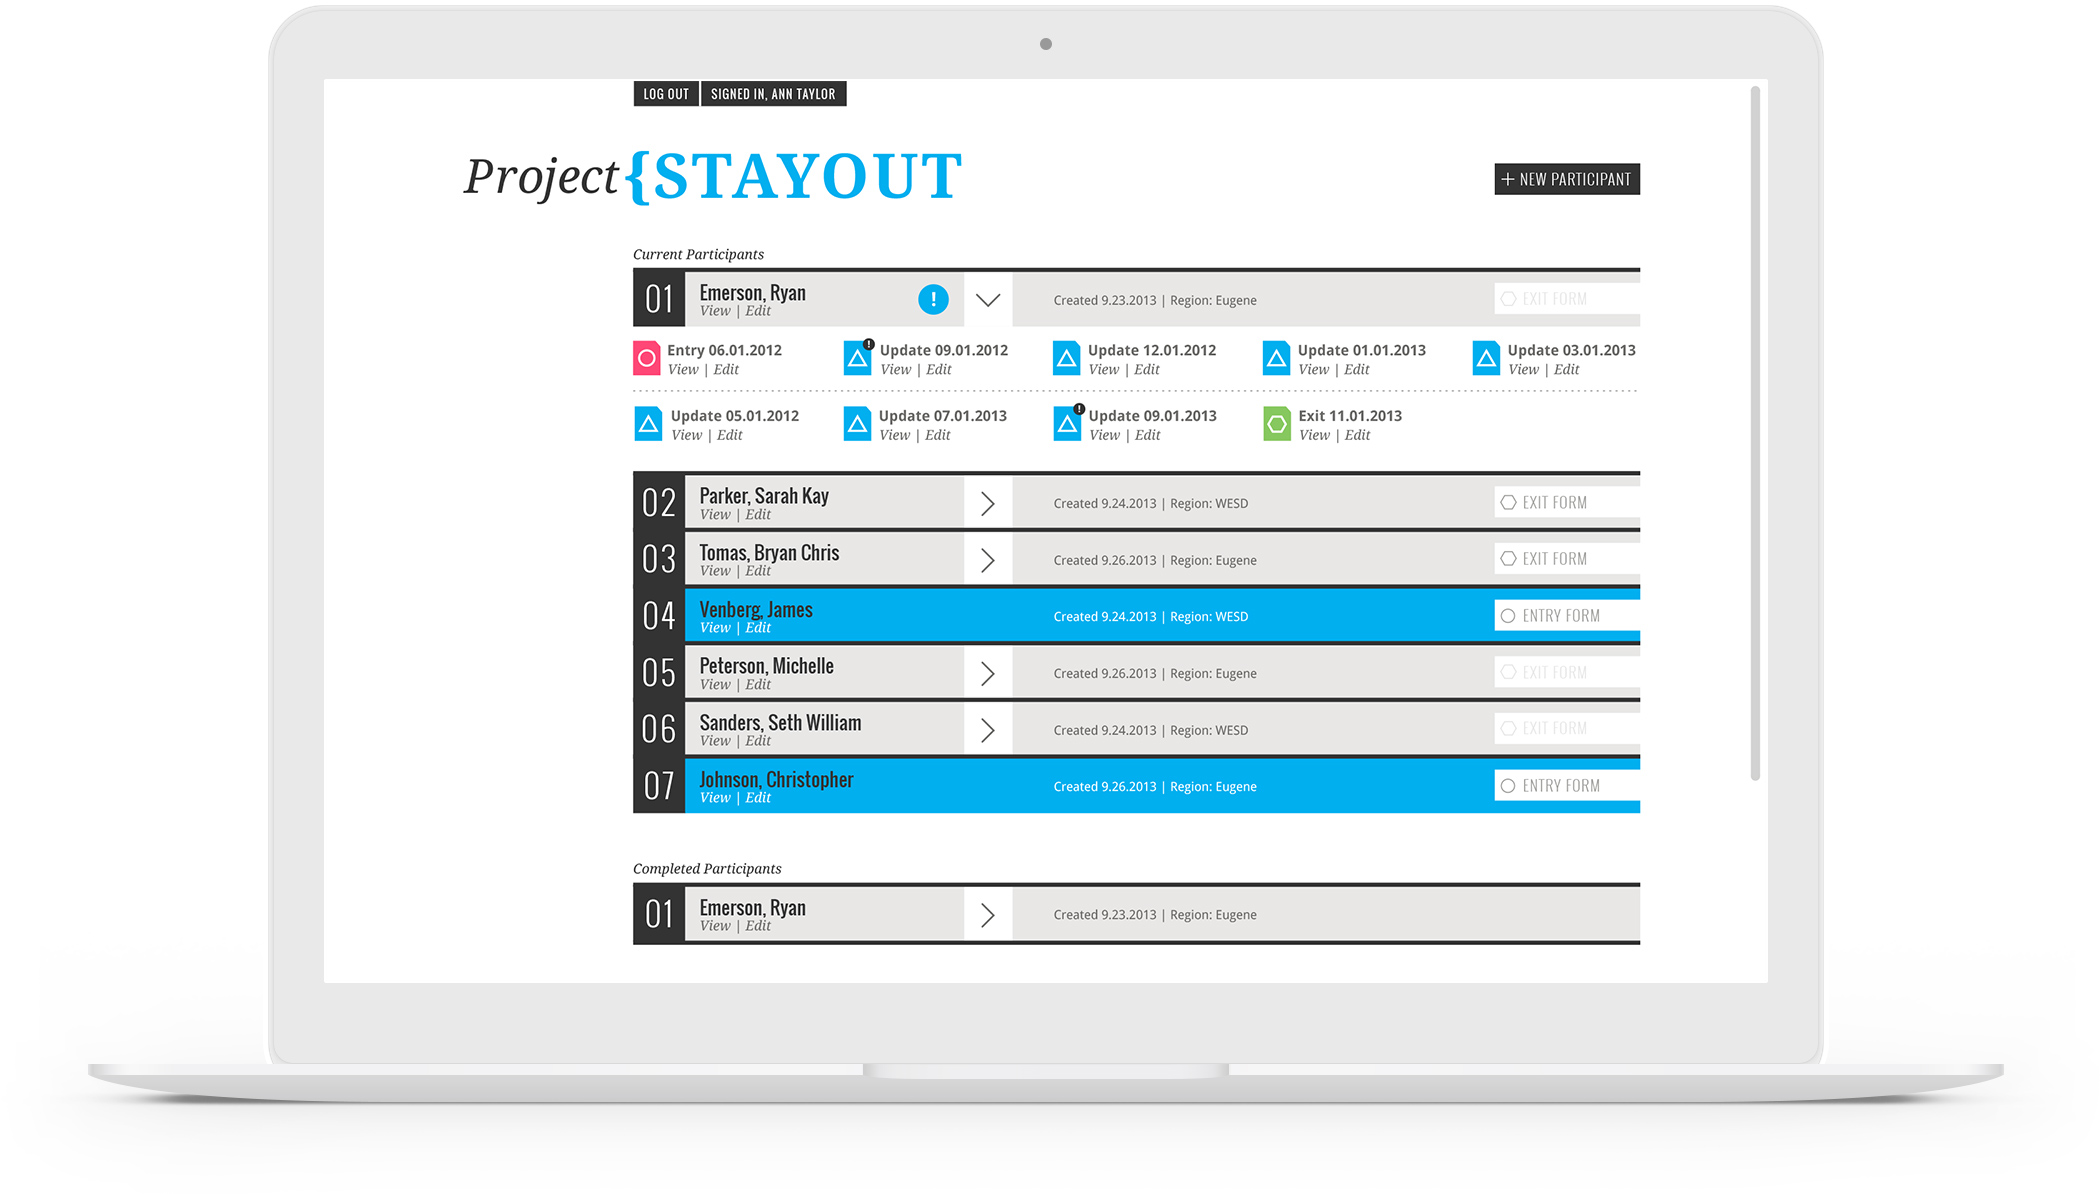 Project STAYOUT Laptop